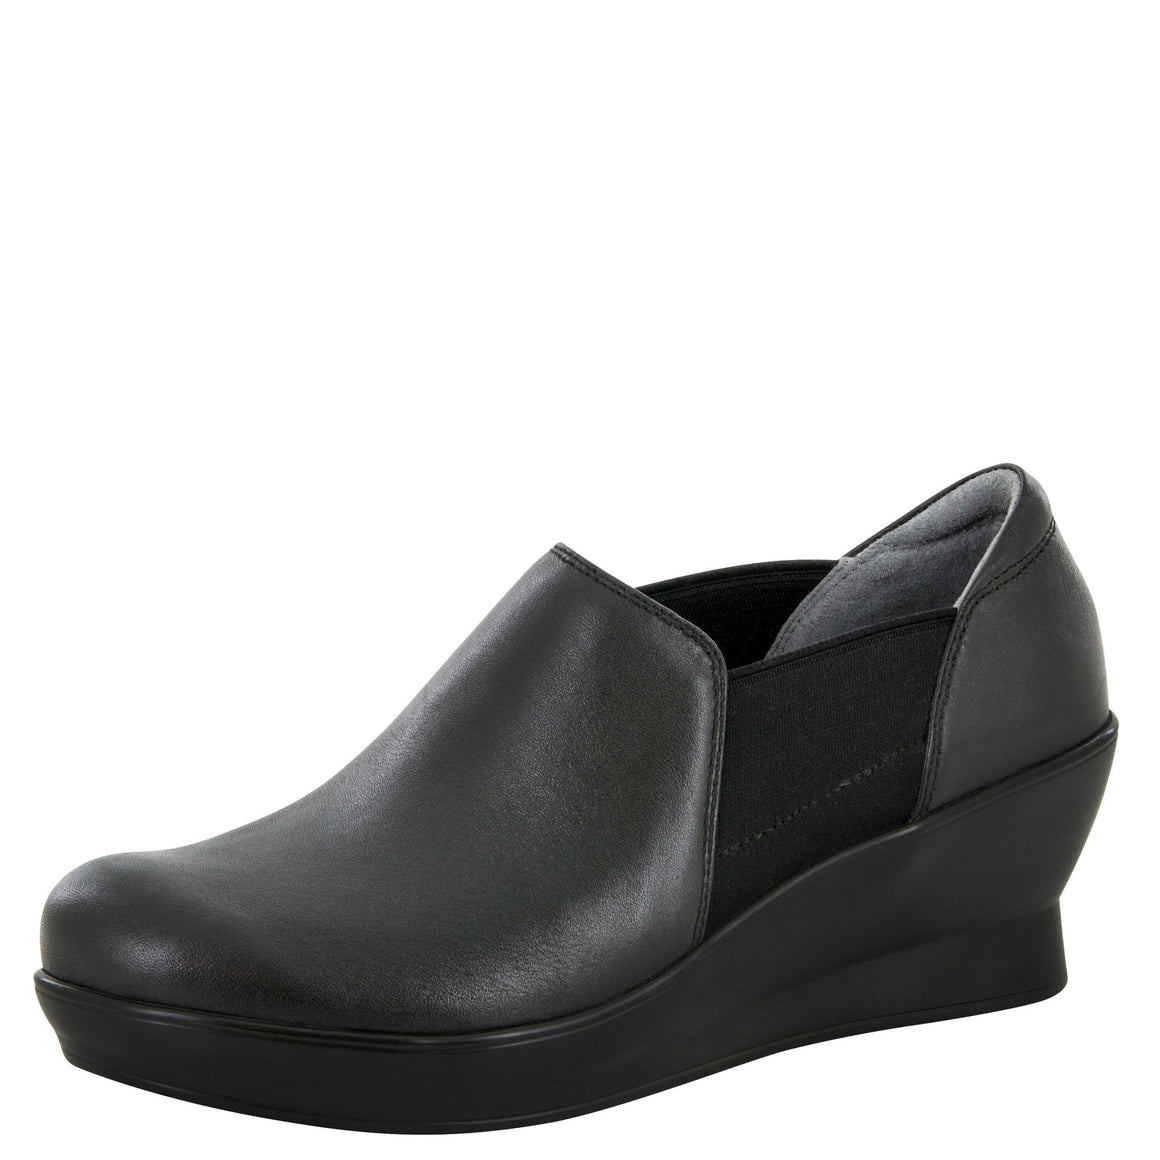 Alegria Women's Fraya Slip-On Wedge - Black FRA-601 - ShoeShackOnline